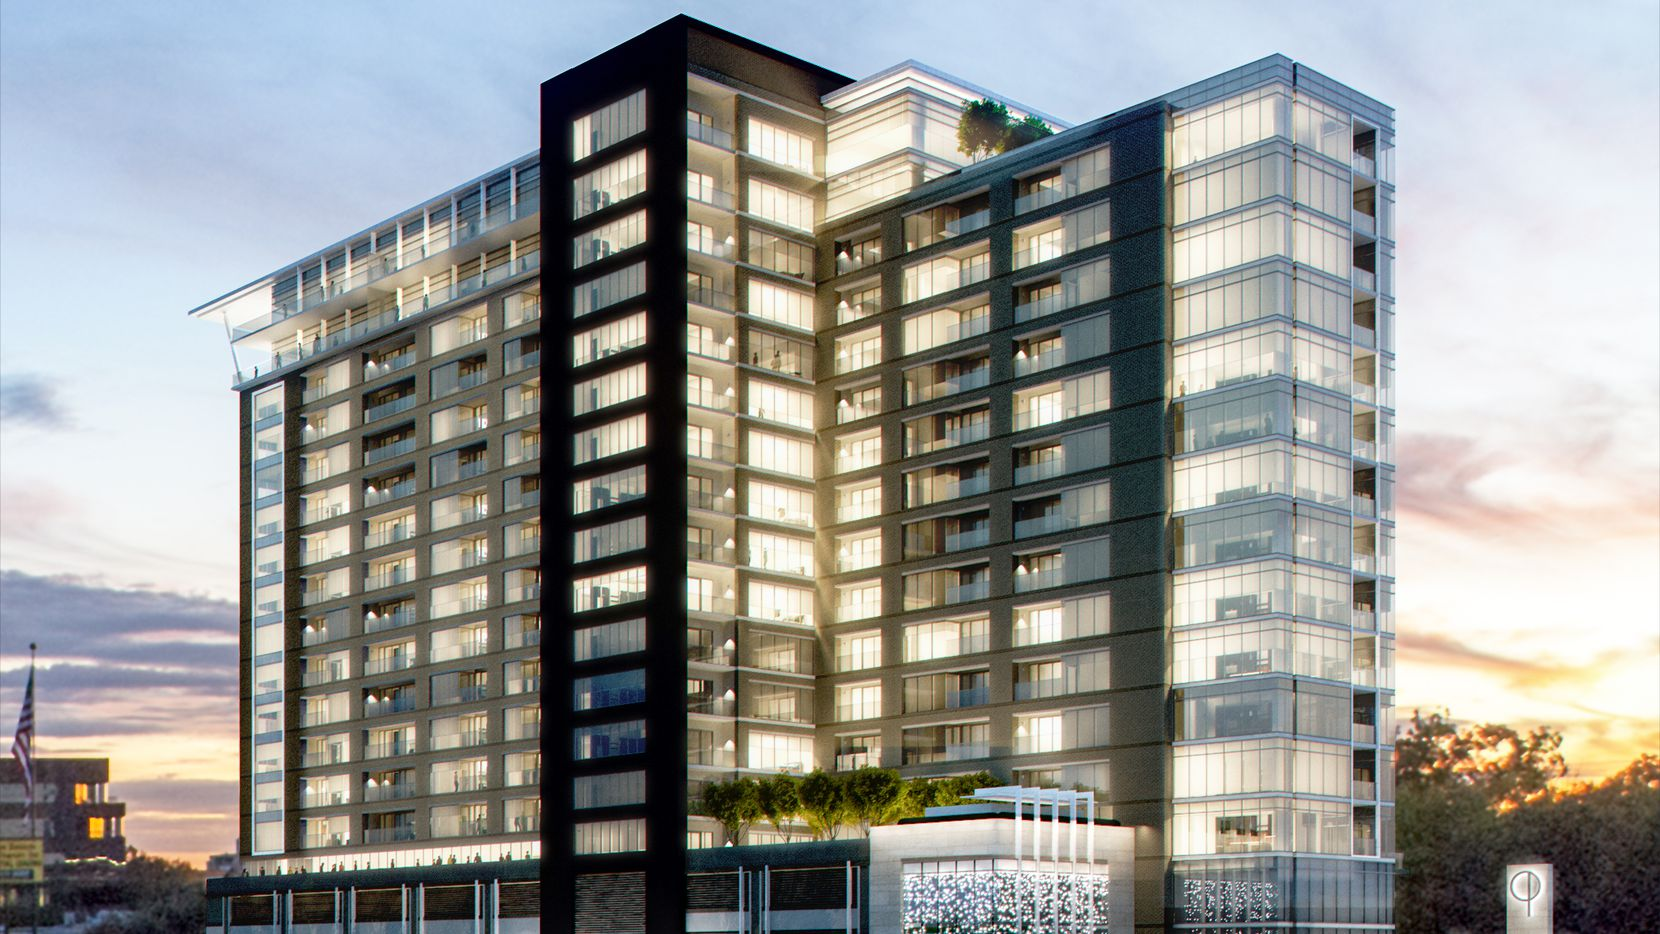 Southern Land's new apartment tower project is on North Central Expressway.